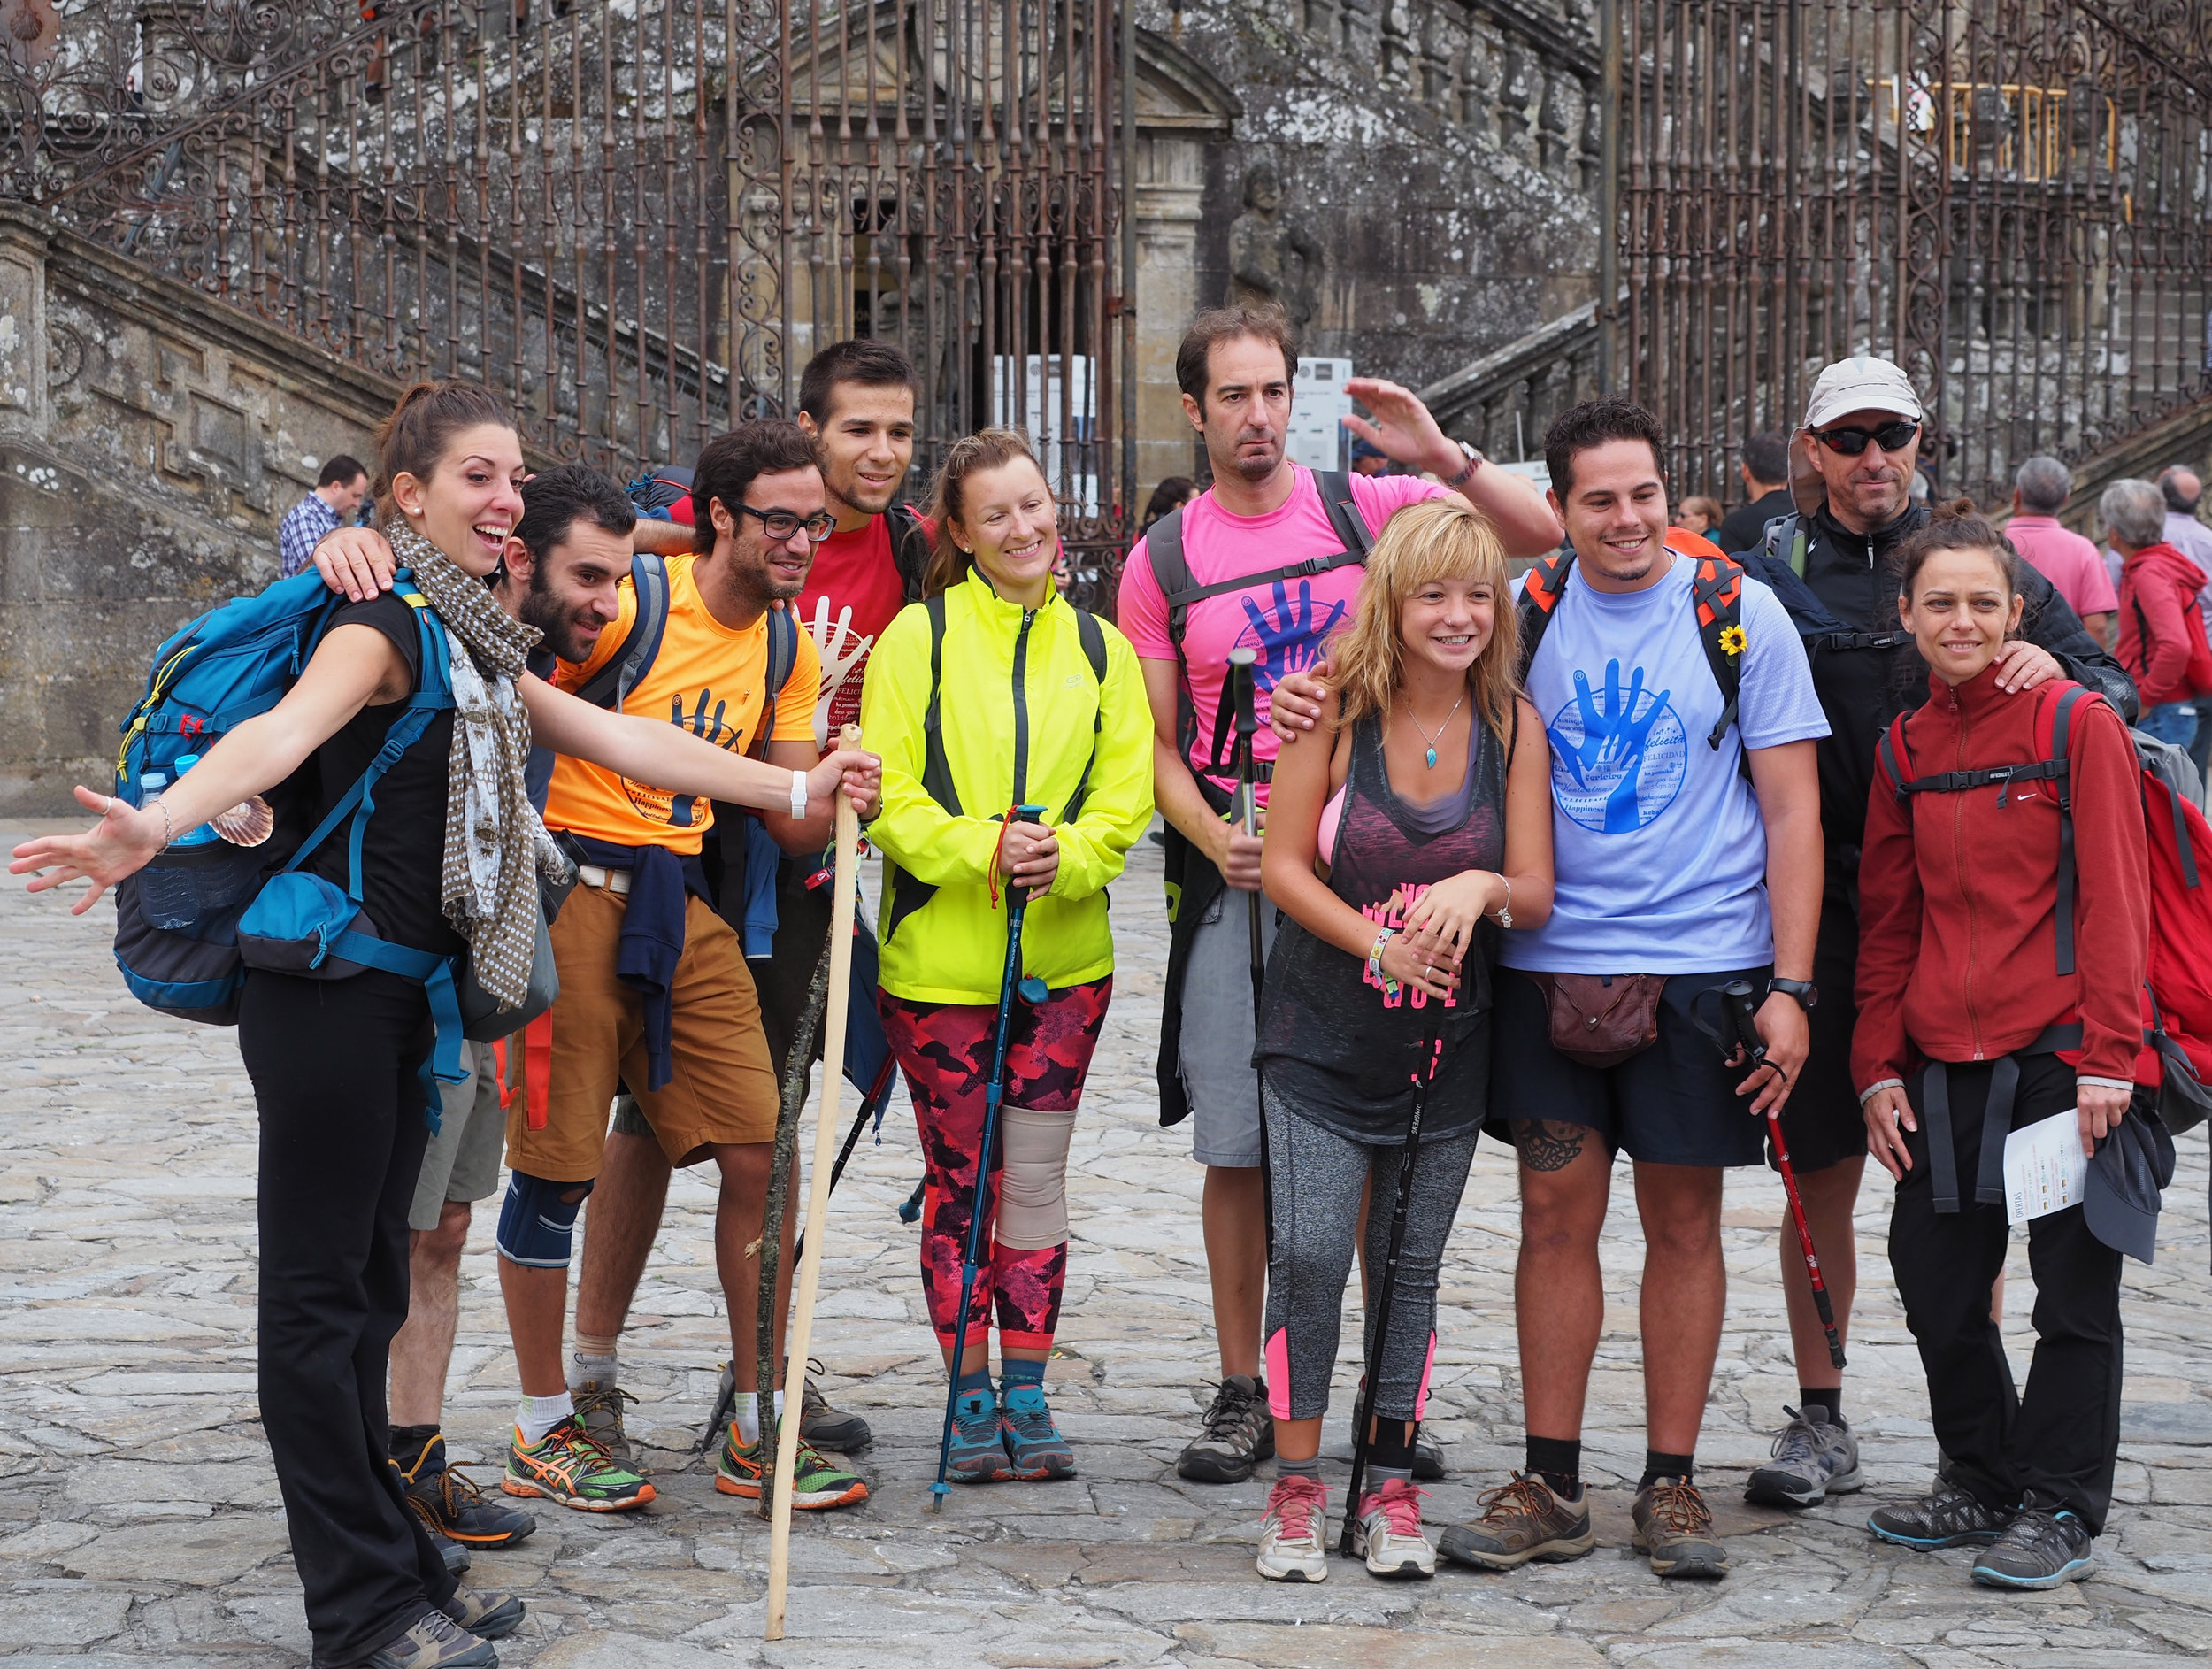 This group of Camino friends is celebrating their arrival in Santiago.Our goal is to help you get there, too.